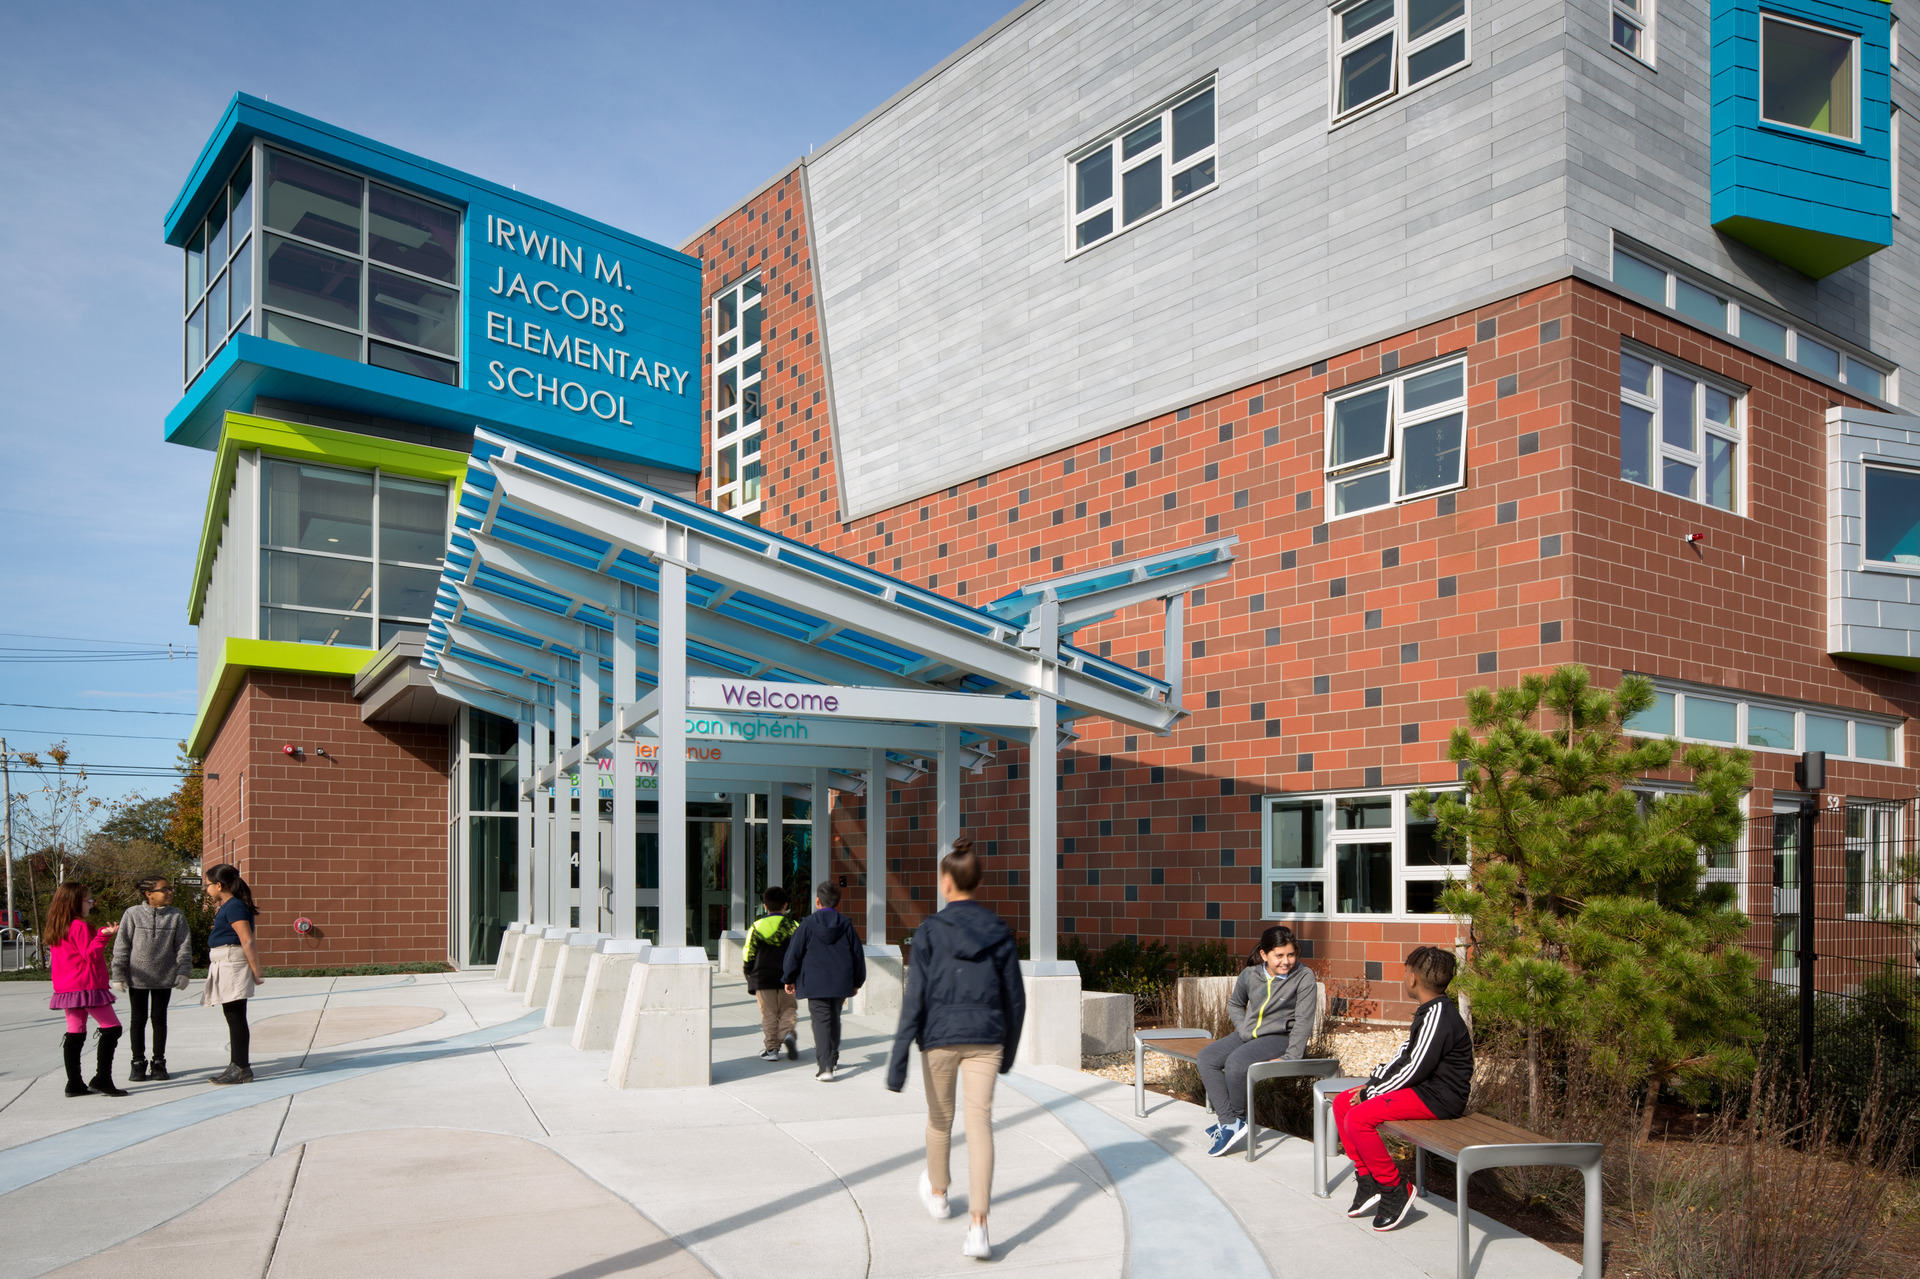 The main school entrance at Irwin M. Jacobson Elementary features a walkway canopy and eye-catching window systems by Pella, using their Architect Series® Traditional windows.